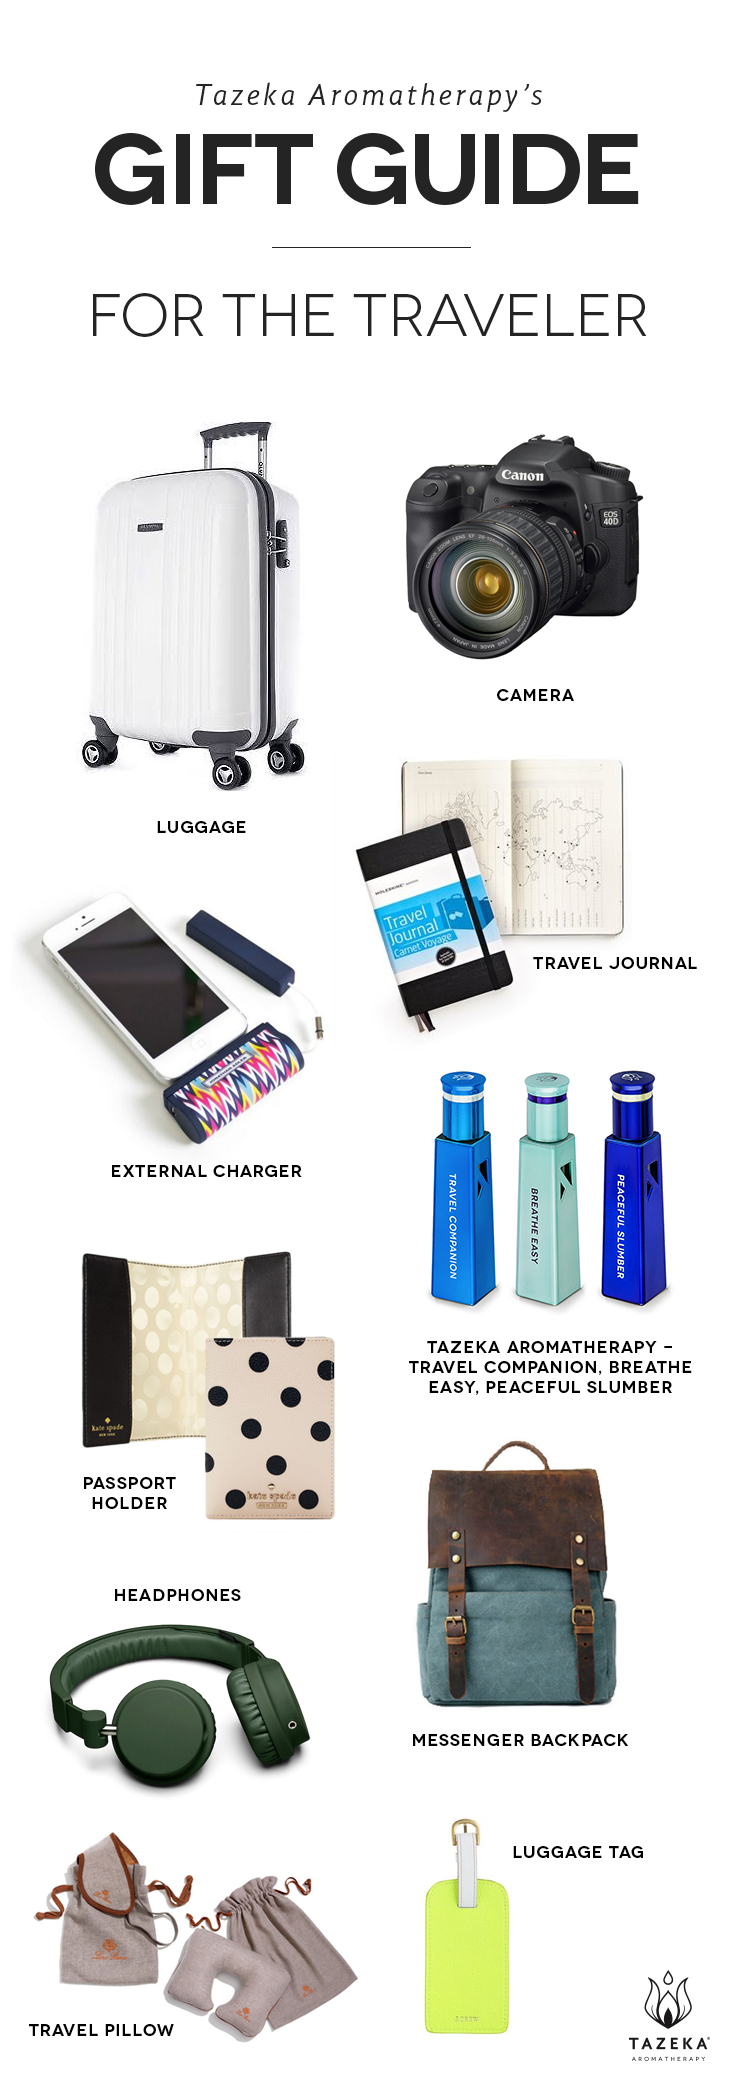 Tazeka's gift guide for the traveler in your life http://www.tazekaaromatherapy.com/